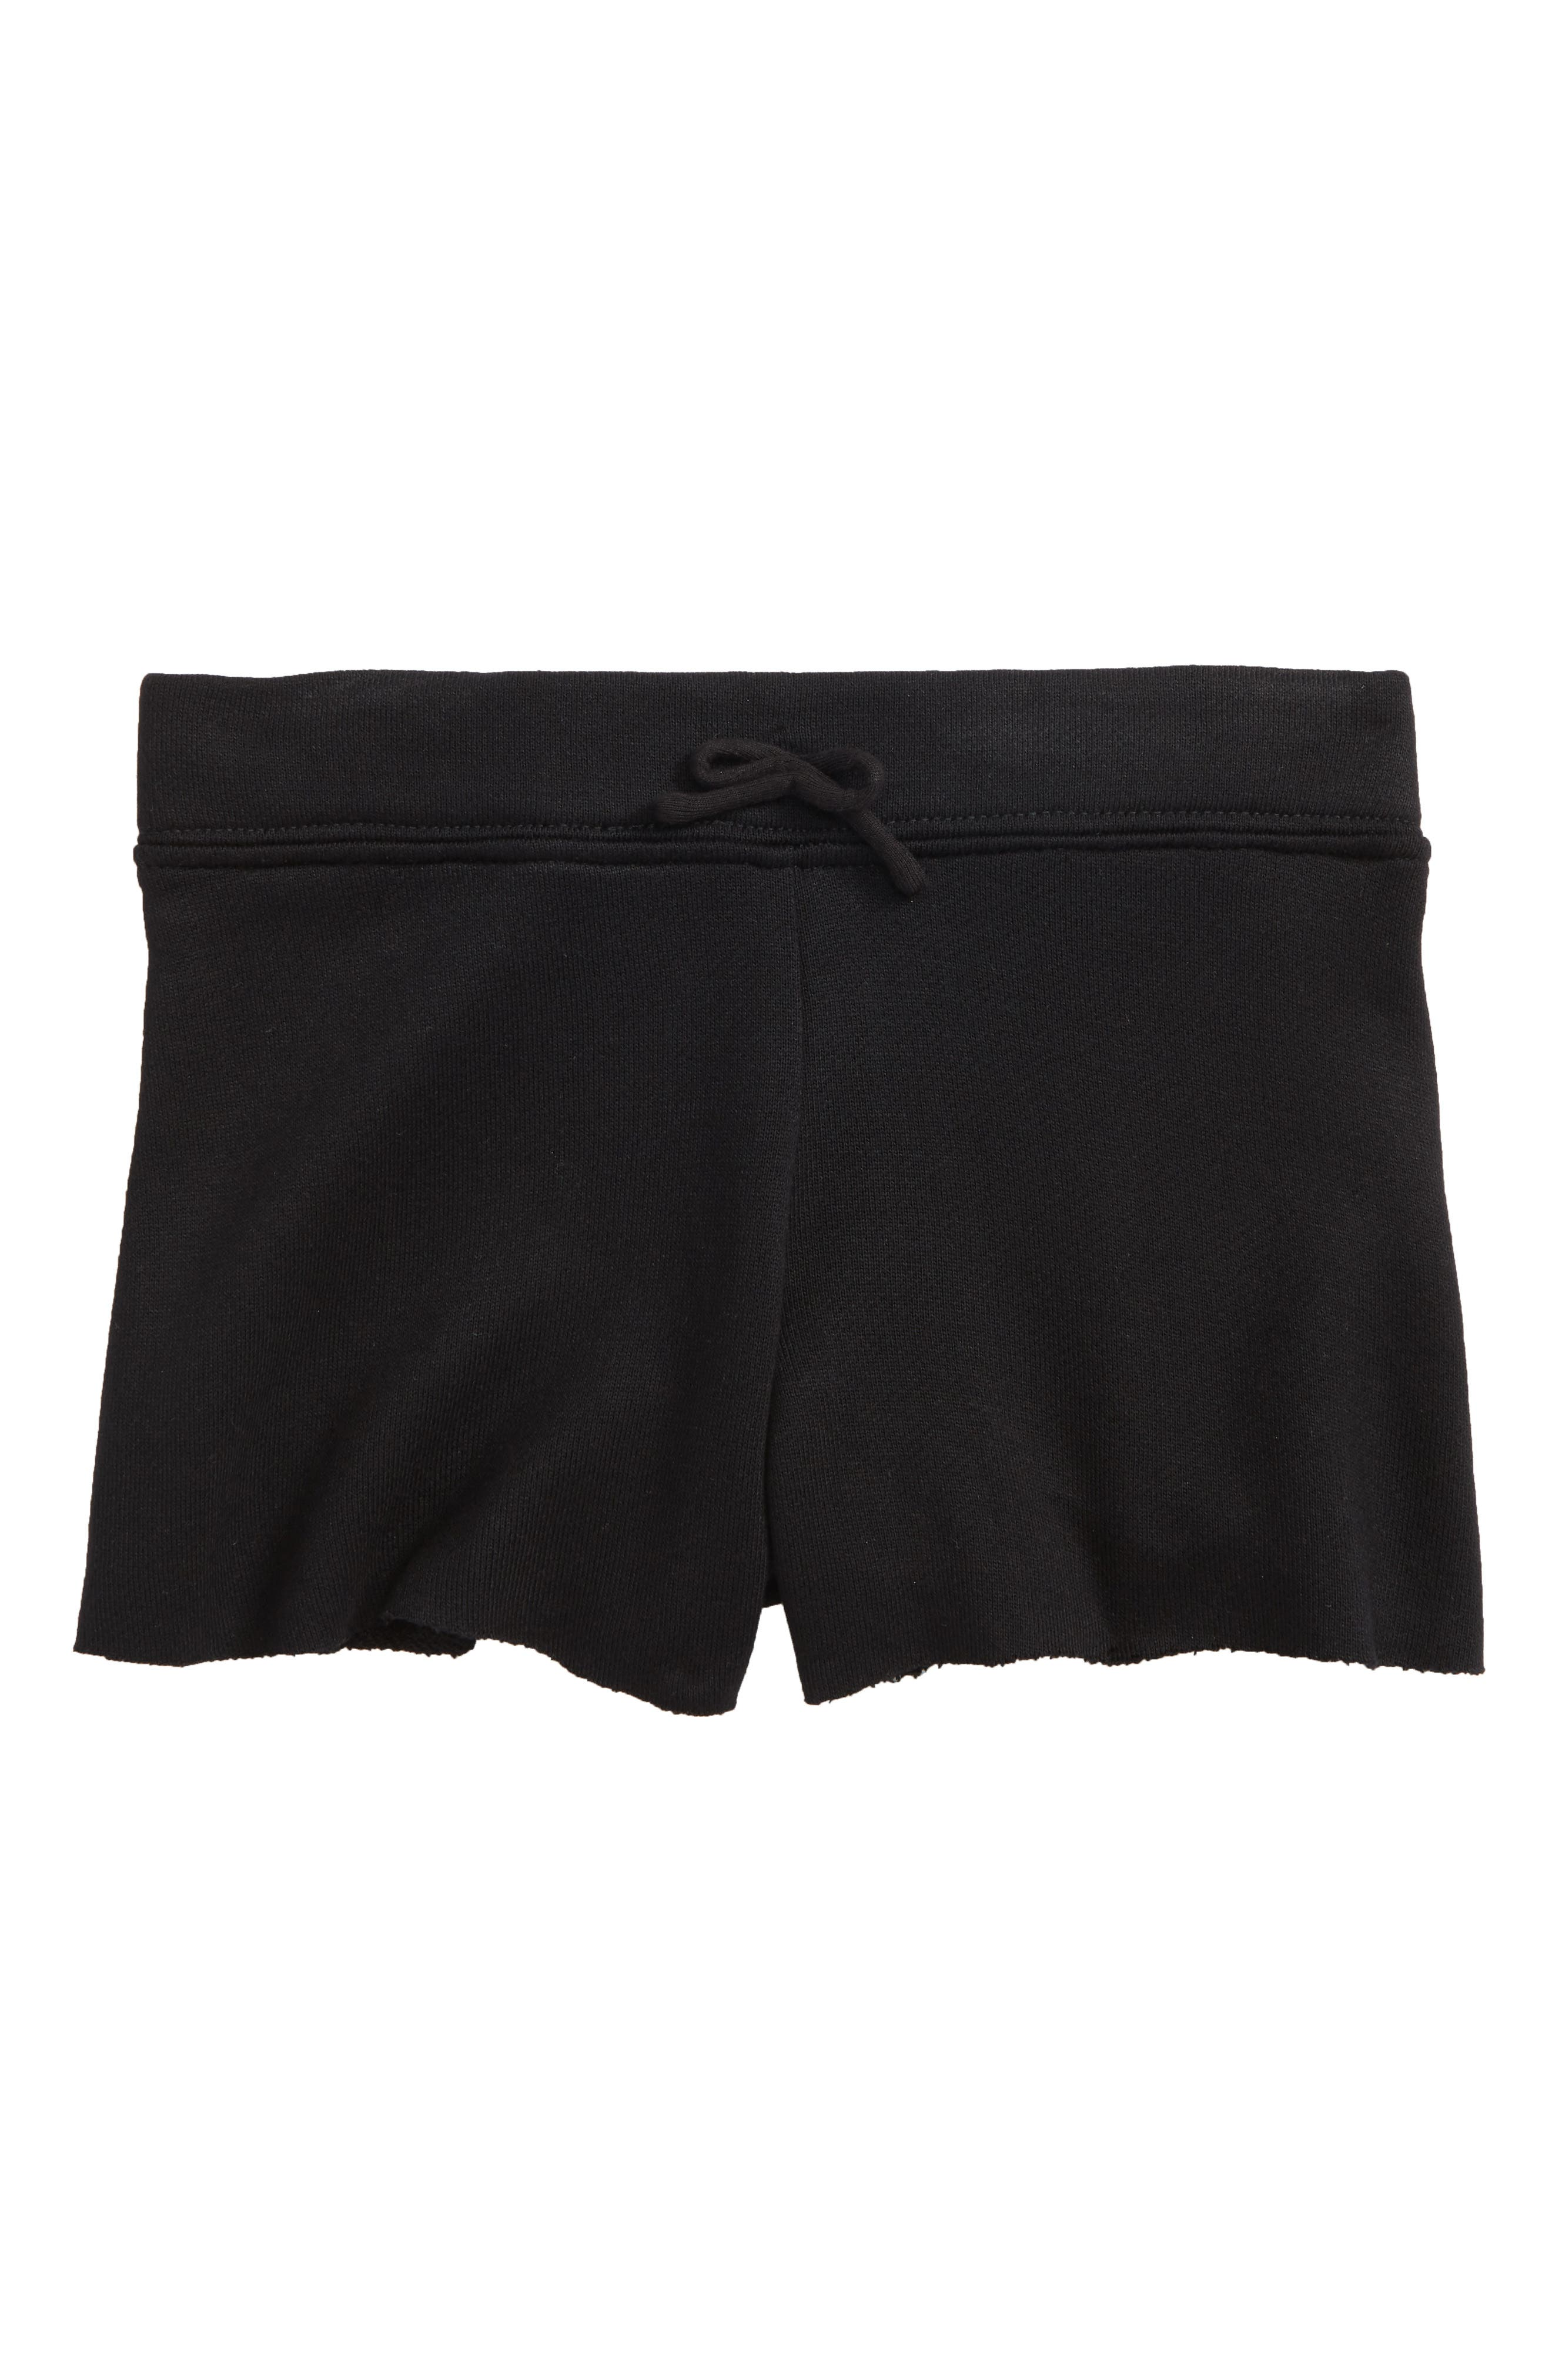 Knit Shorts,                         Main,                         color, Black-Solid